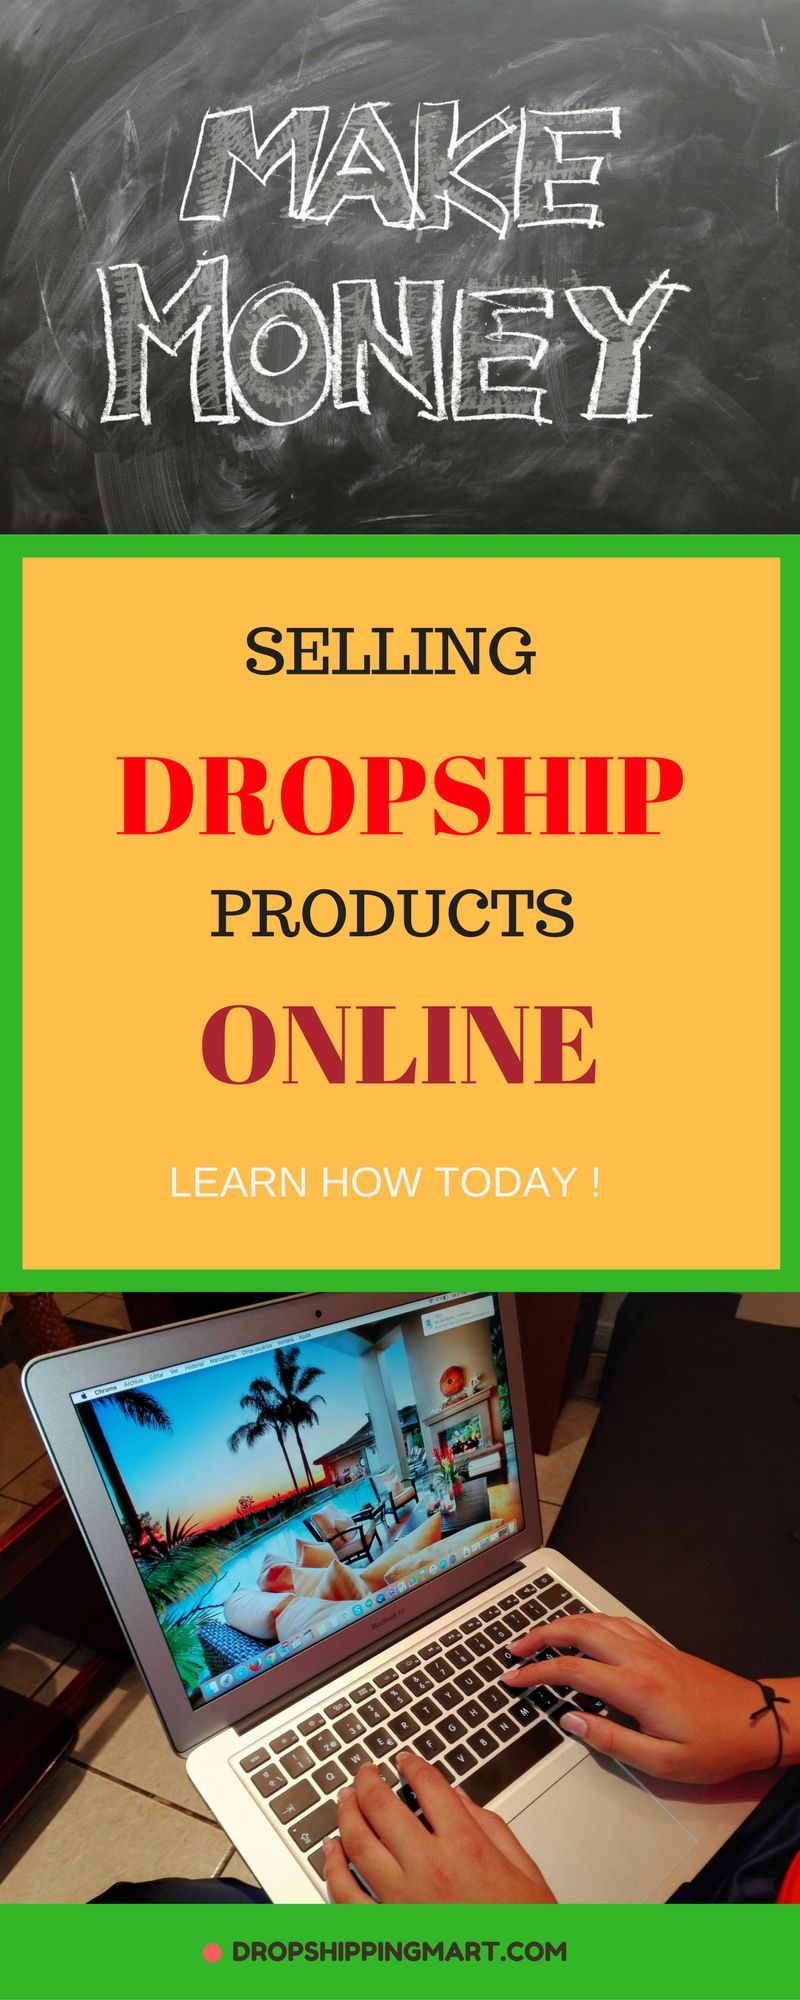 Best Dropshipping Businesses Drop shipping business, How